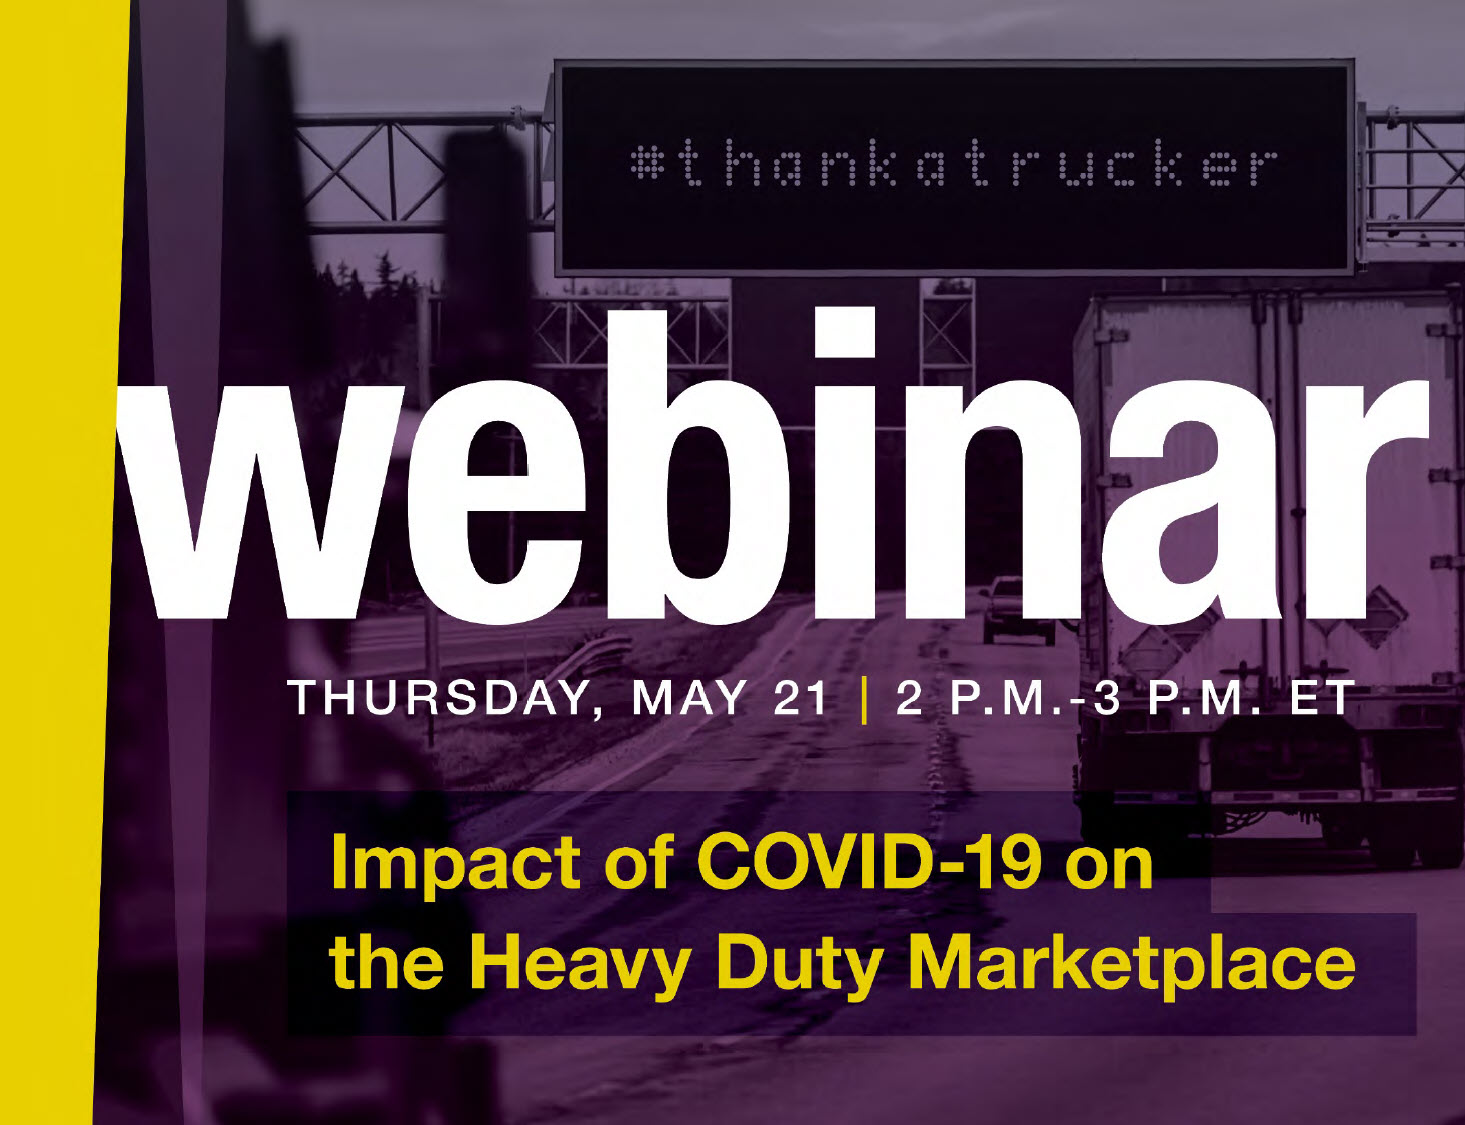 Impact of COVID-19 on the Heavy Duty Marketplace